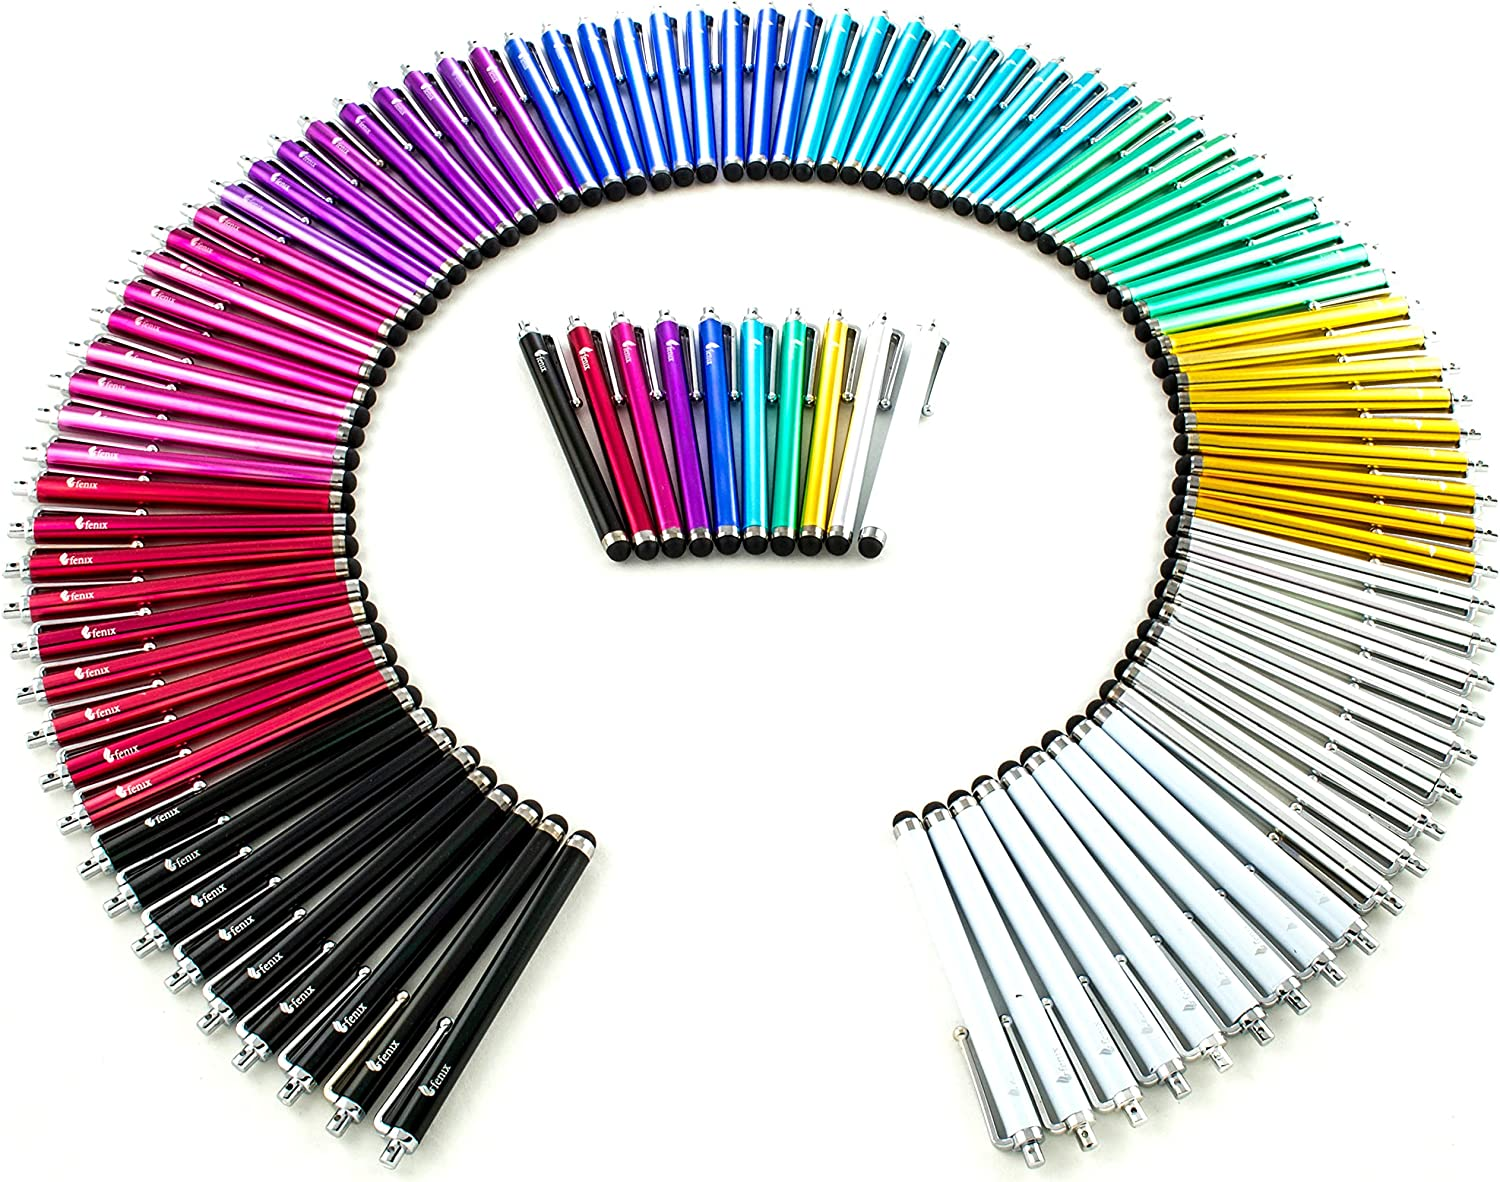 Fenix - Pack of 100 Universal Stylus for iPhone, iPad, Samsung Galaxy Note, Samsung Galaxy S4 S5 S6, LG, Tablet and Much More